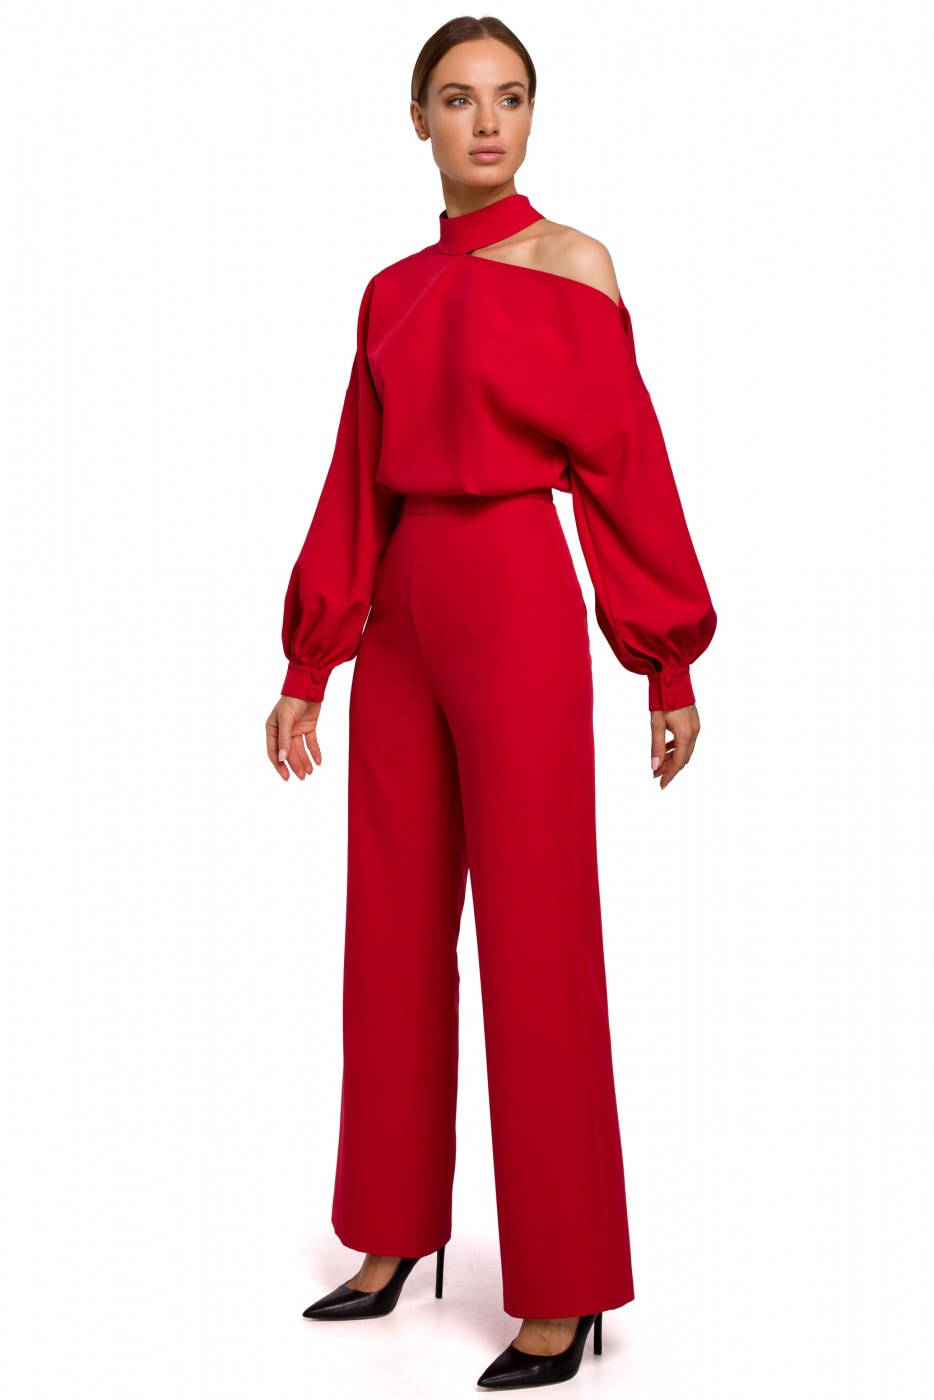 Made Of Emotion Woman's Jumpsuit M528